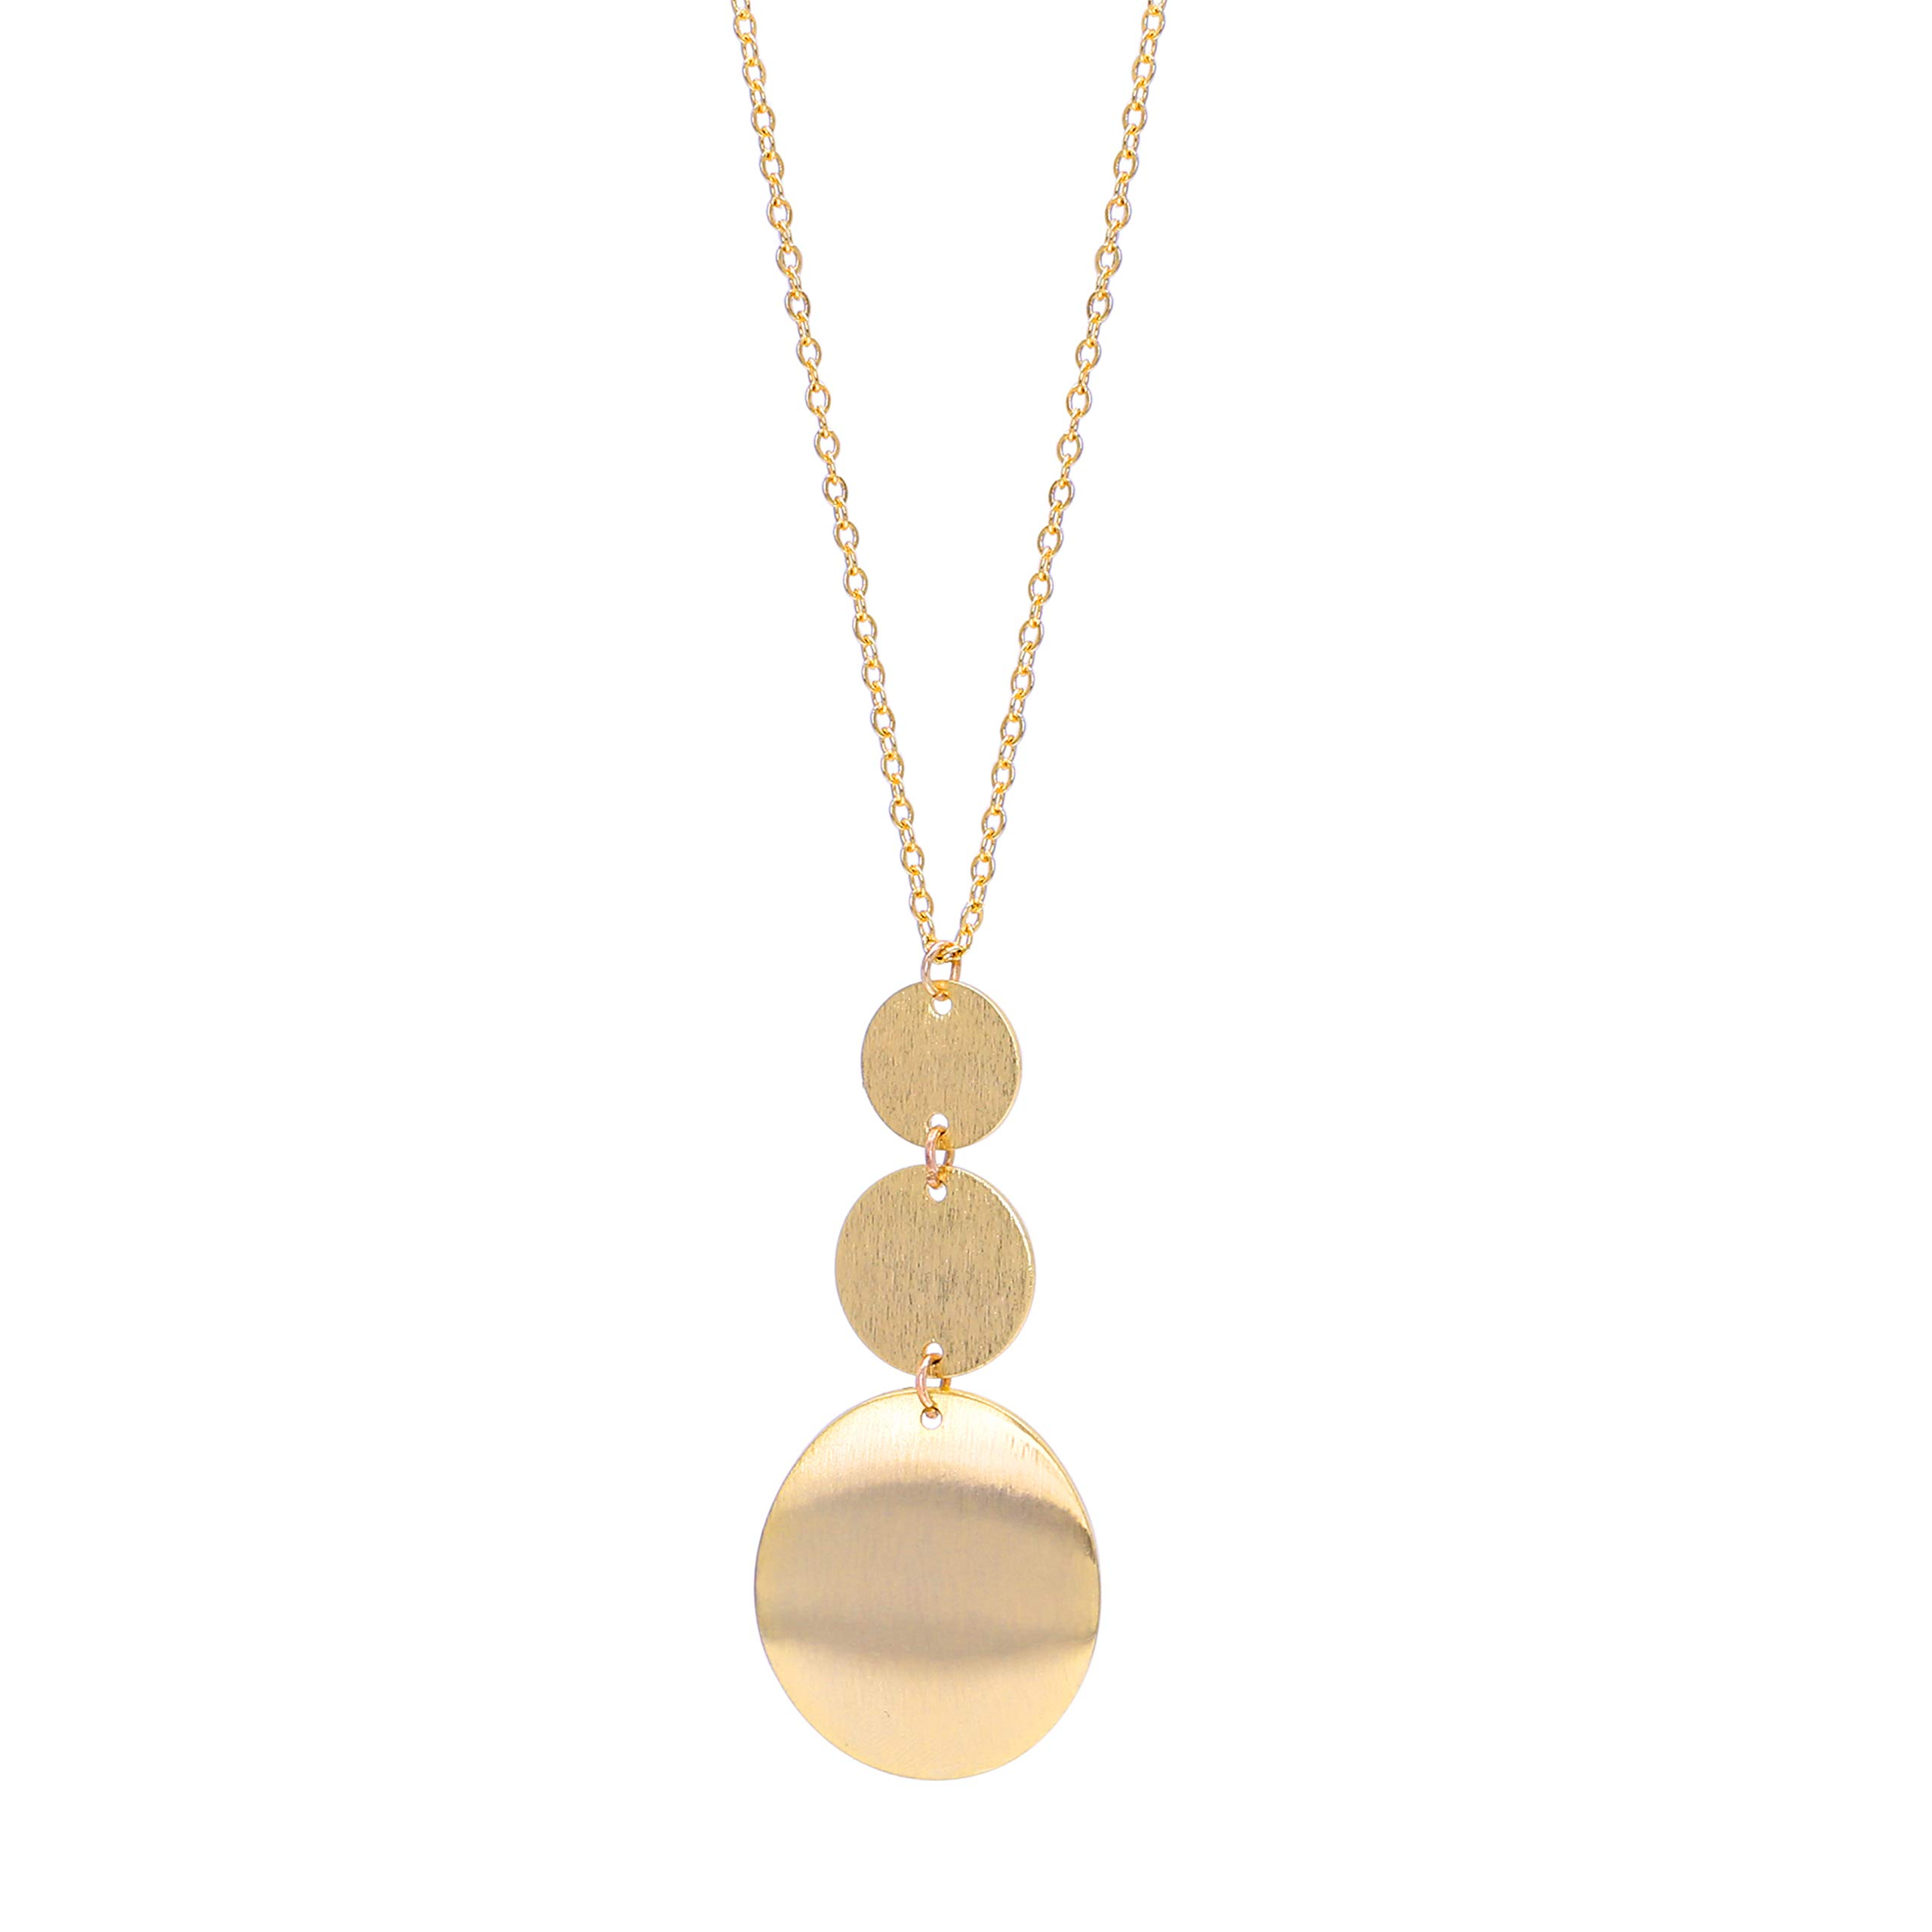 Long Disc Pendant Necklace Adjustable 18K Gold Plated Sweater Chain Necklace Handmade Multi-Layer Pendant Y-style Jewelry for Women by PERNNLA PEARL